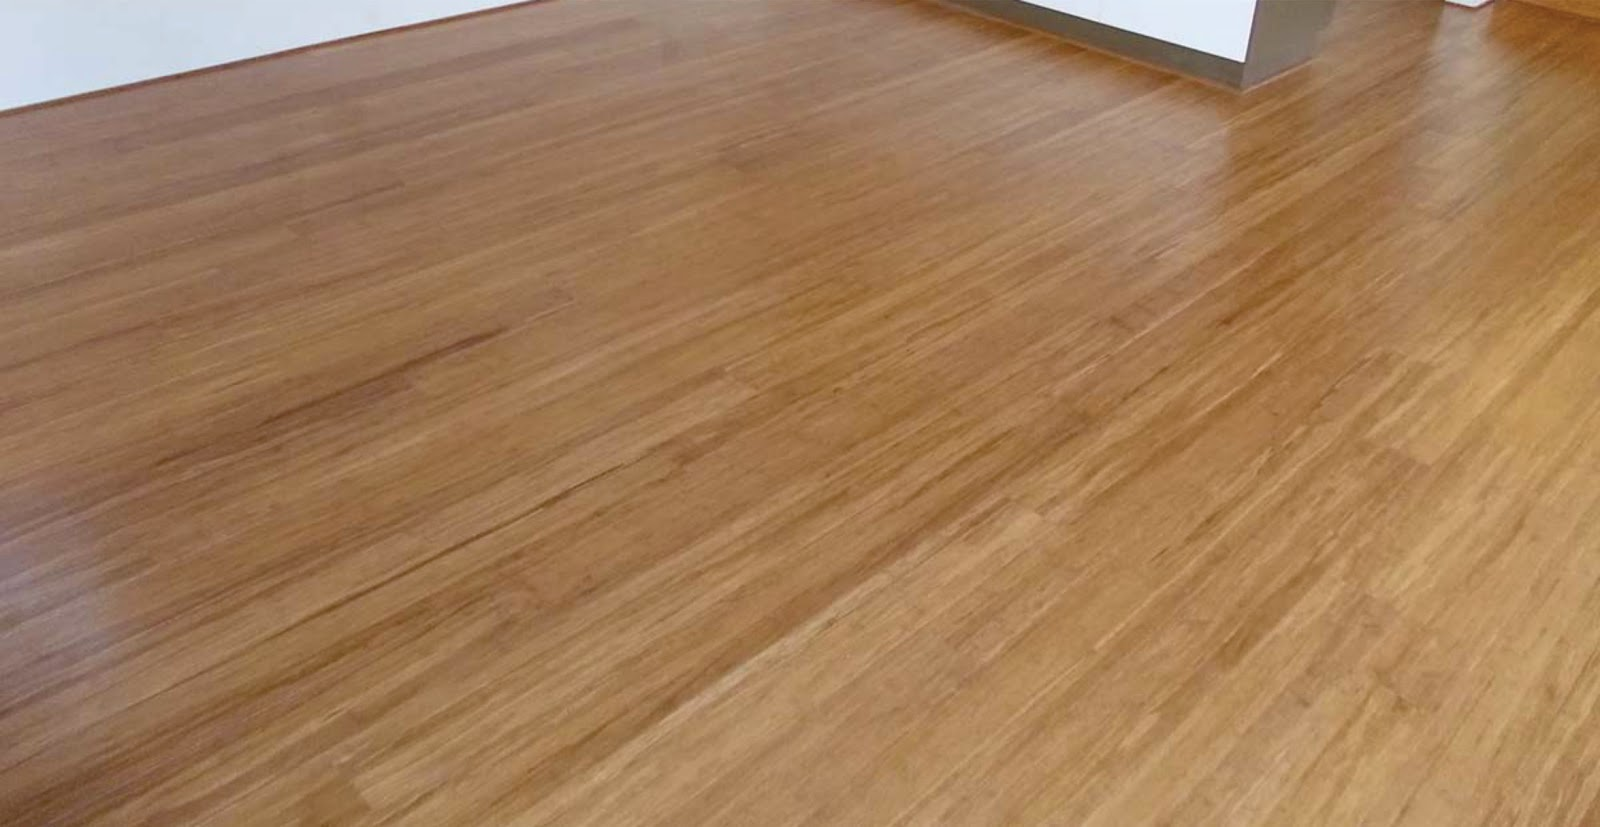 Bamboo grove photo bamboo hardwood flooring for Hardwood floors or carpet